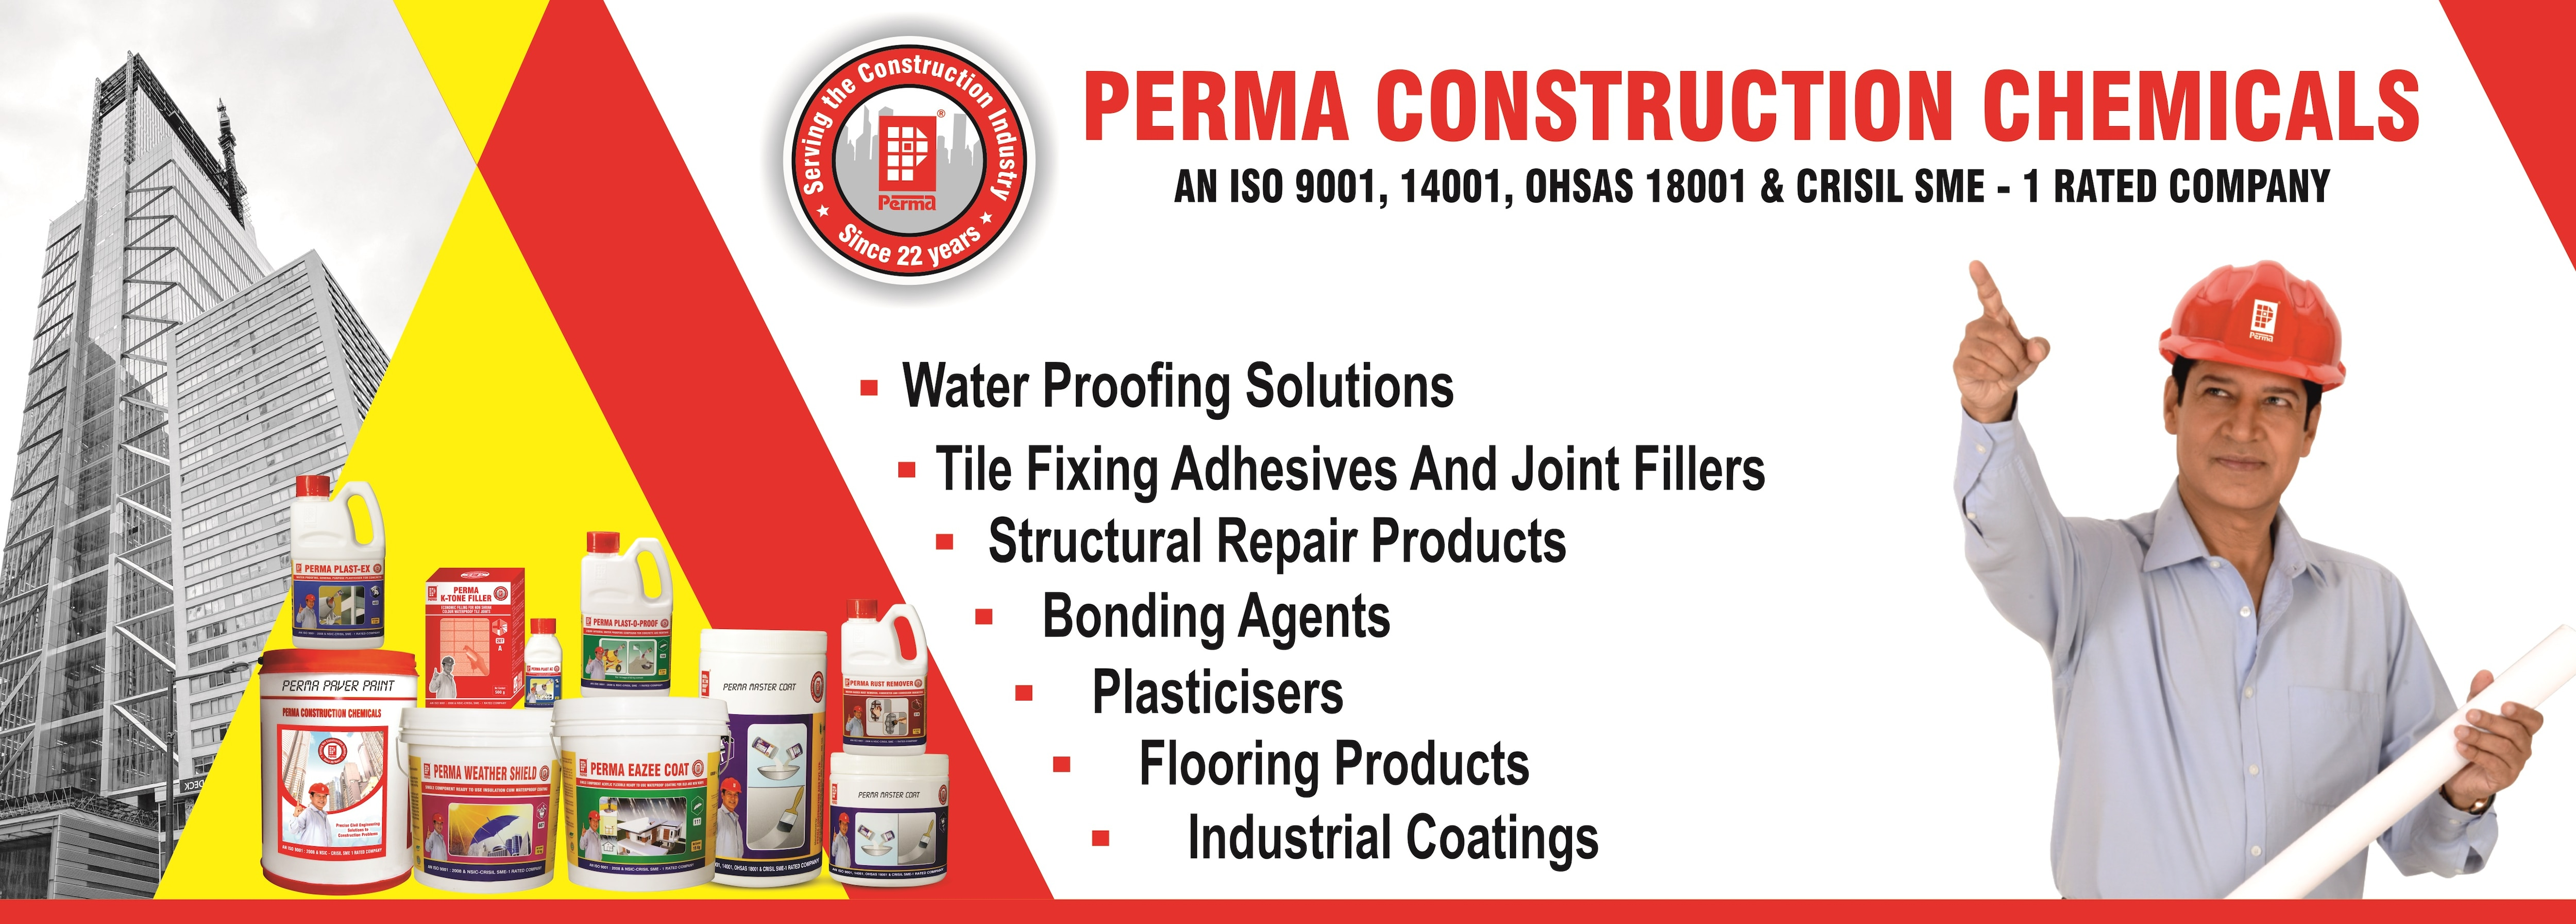 Waterproofing Chemic